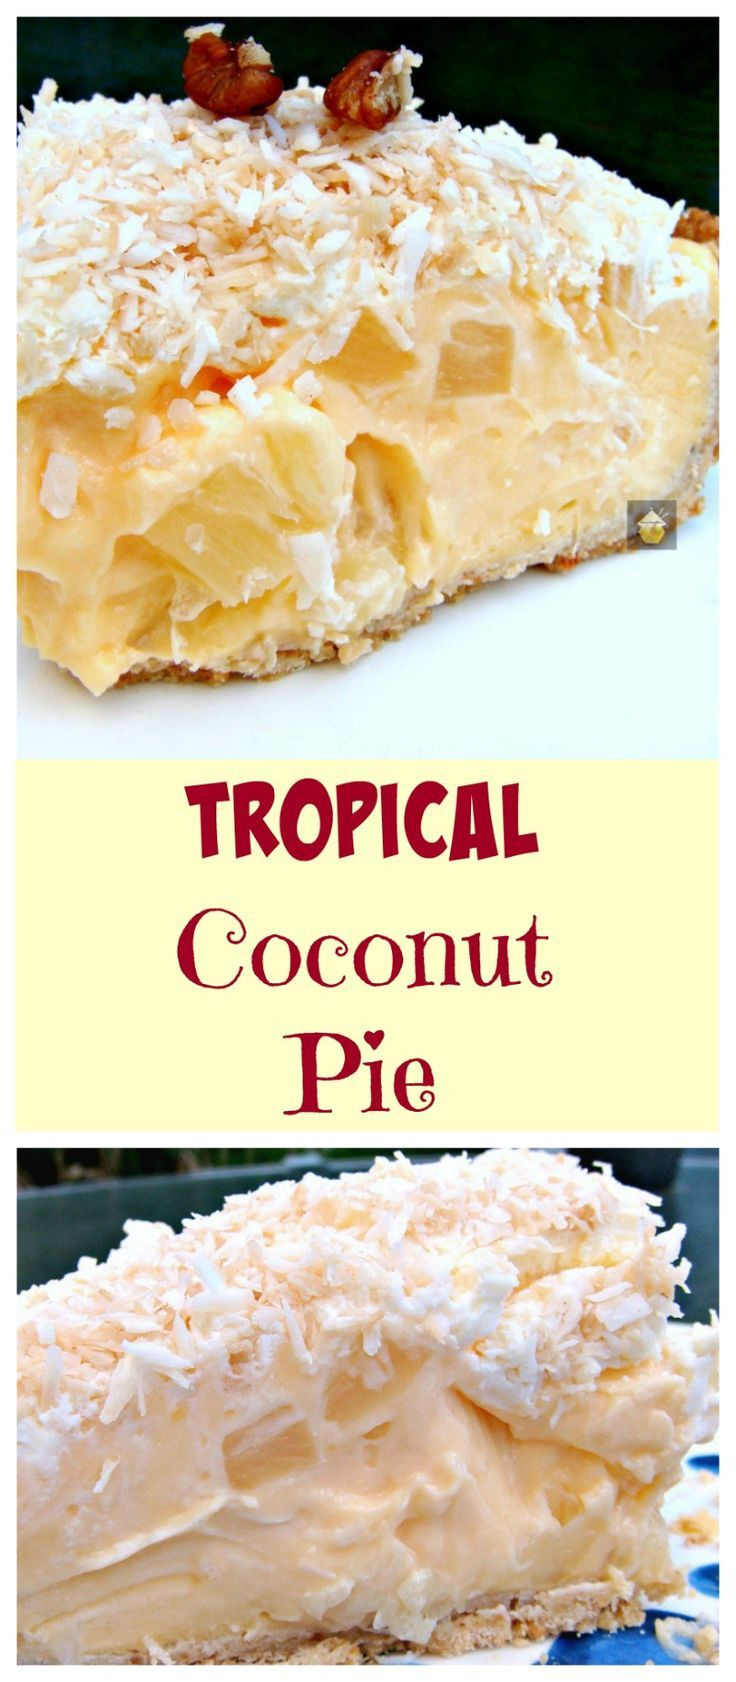 TROPICAL COCONUT PIE! It is so creamy and has a rich coconut flavor, laced throughout with juicy pineapple chunks and a crispy pie crust. Heavenly!